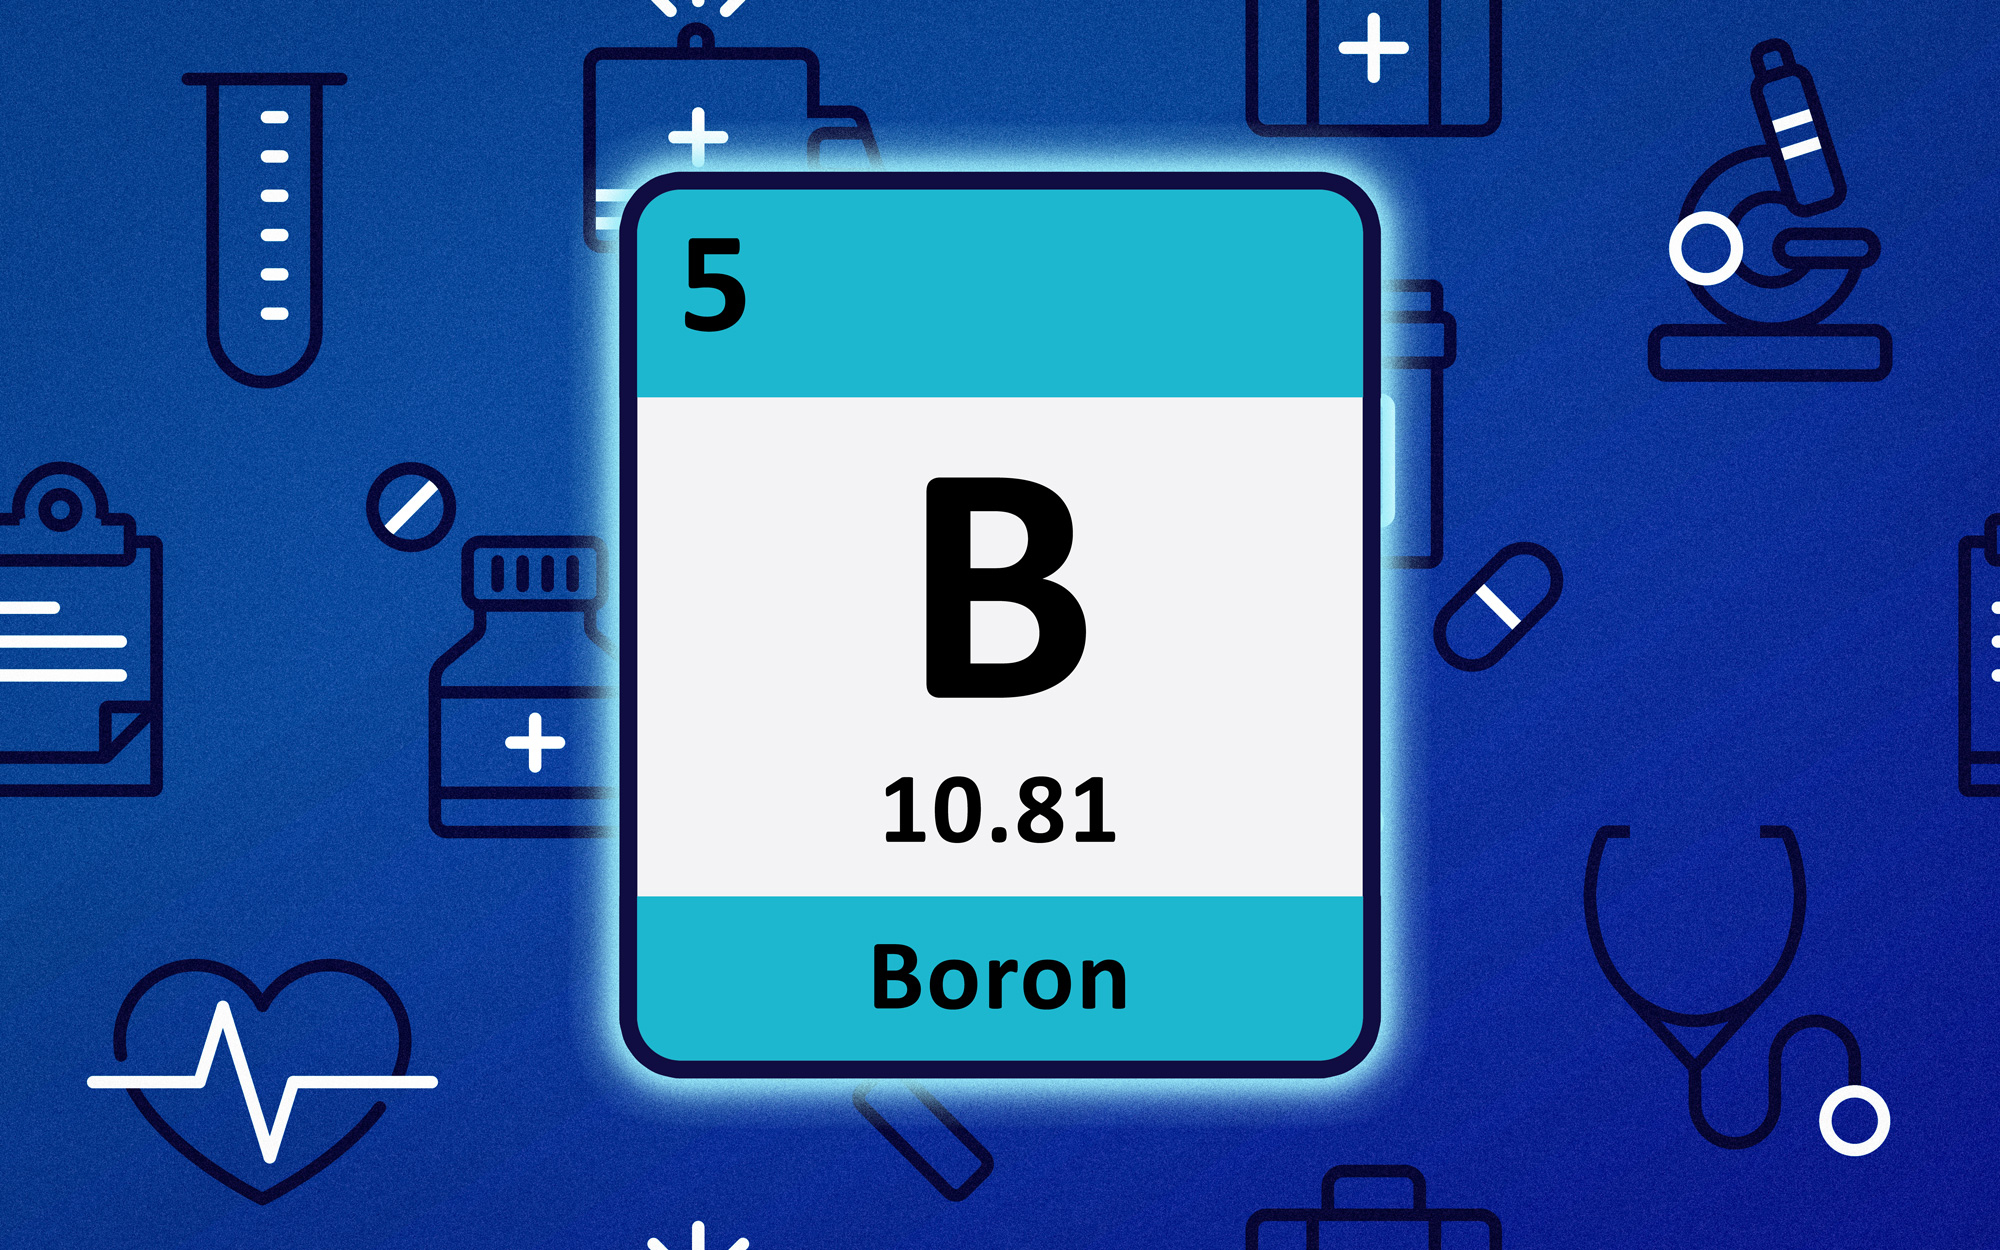 An image of Boron on the Periodic Table.